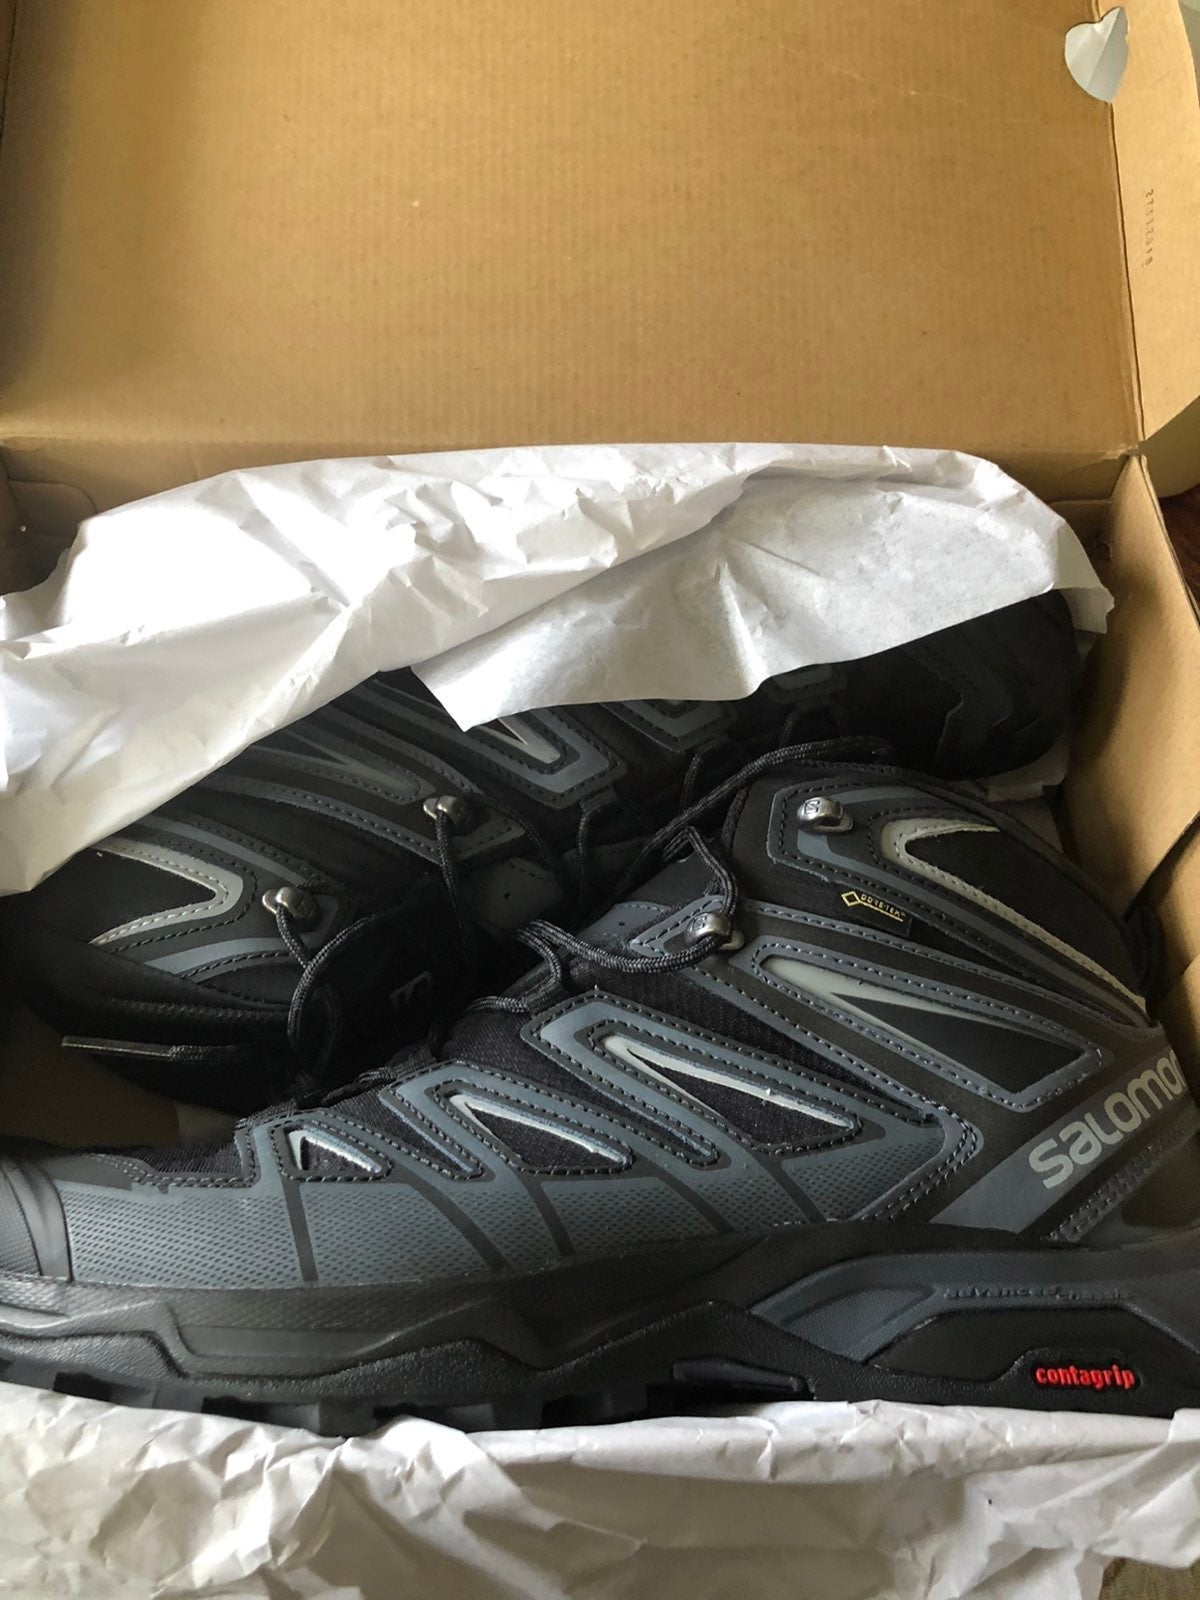 Salomon x ultra mens boots